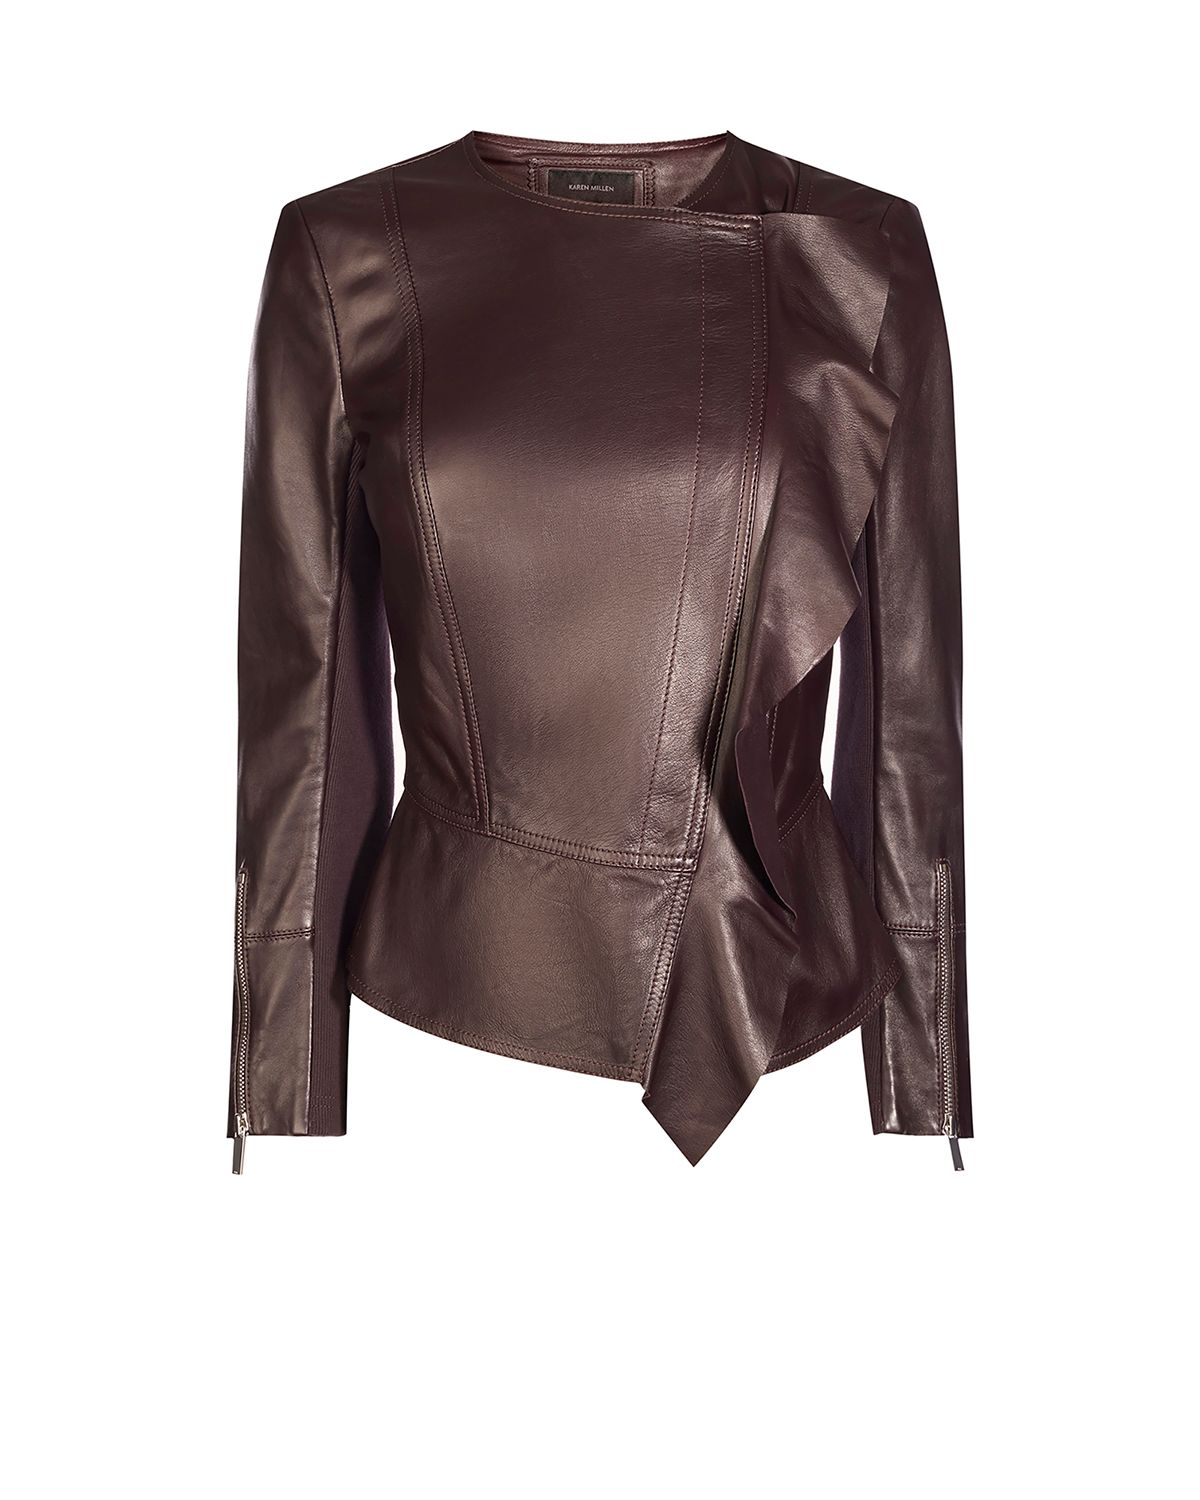 Karen Millen Frill Drape Leather Jacket, Aubergine